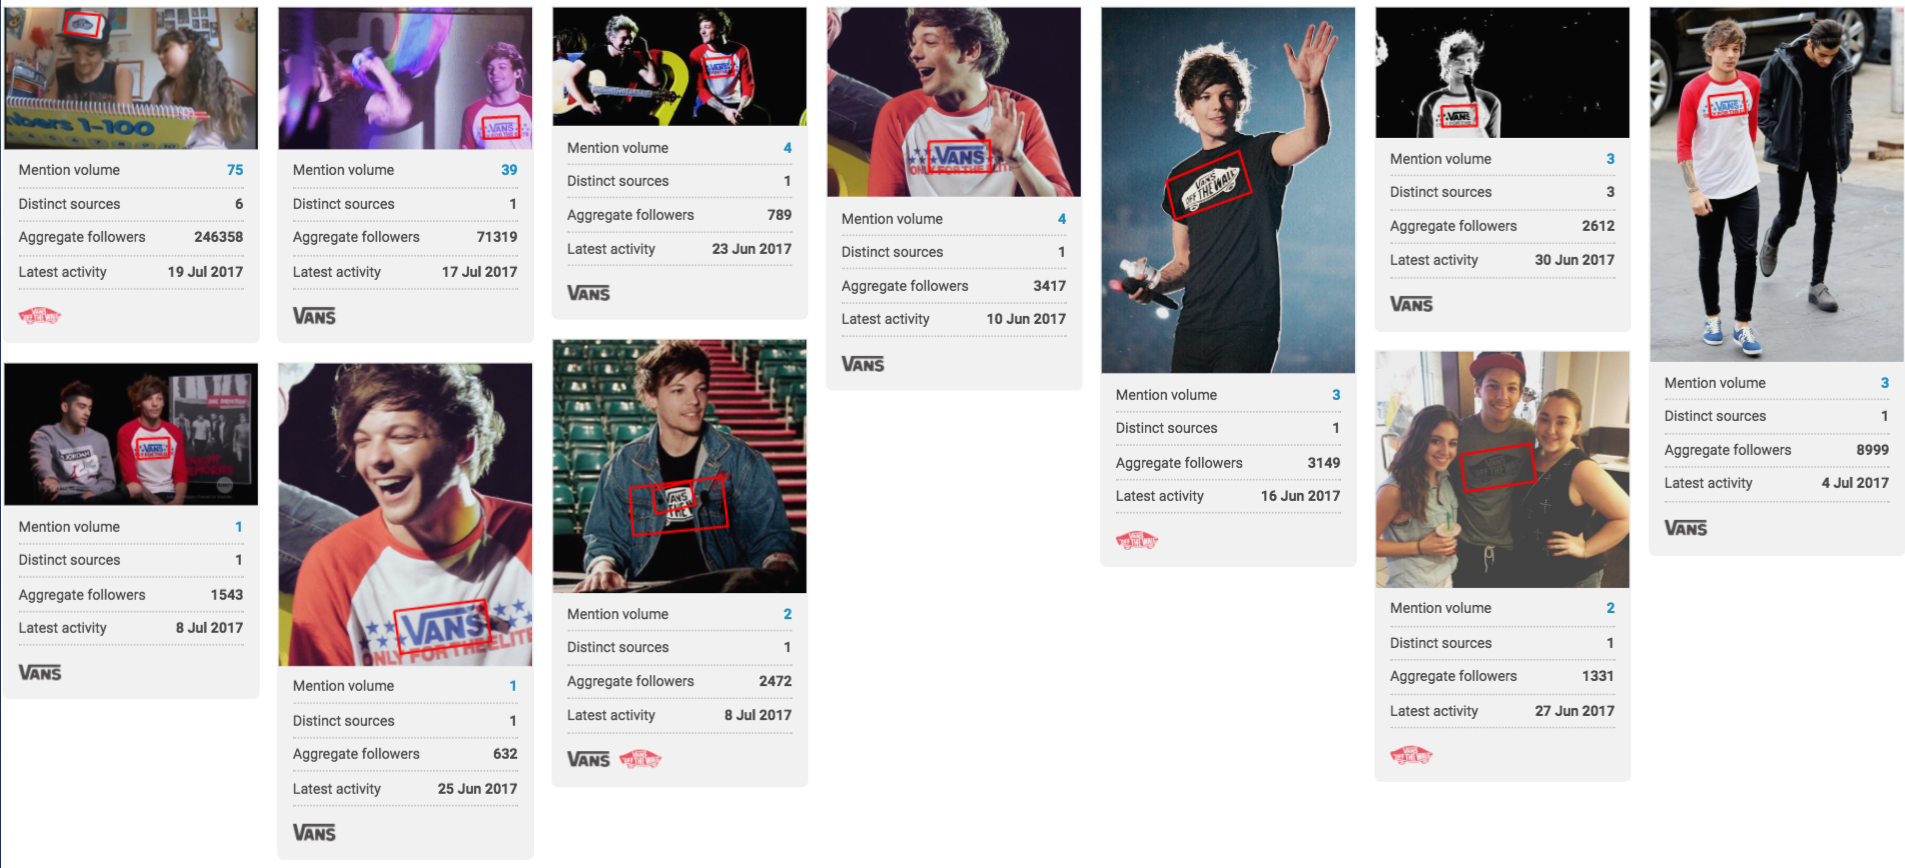 A screenshot from the Brandwatch platform showing multiple instances of Louis Tomlinson wearing VANS branded clothing